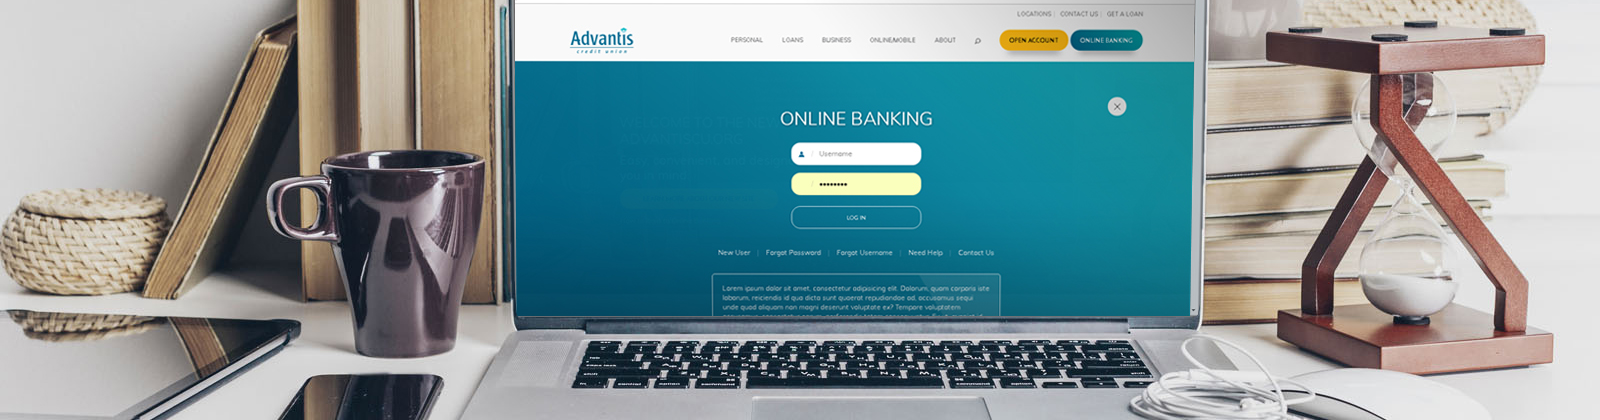 New Online Banking Website login displayed on a laptop